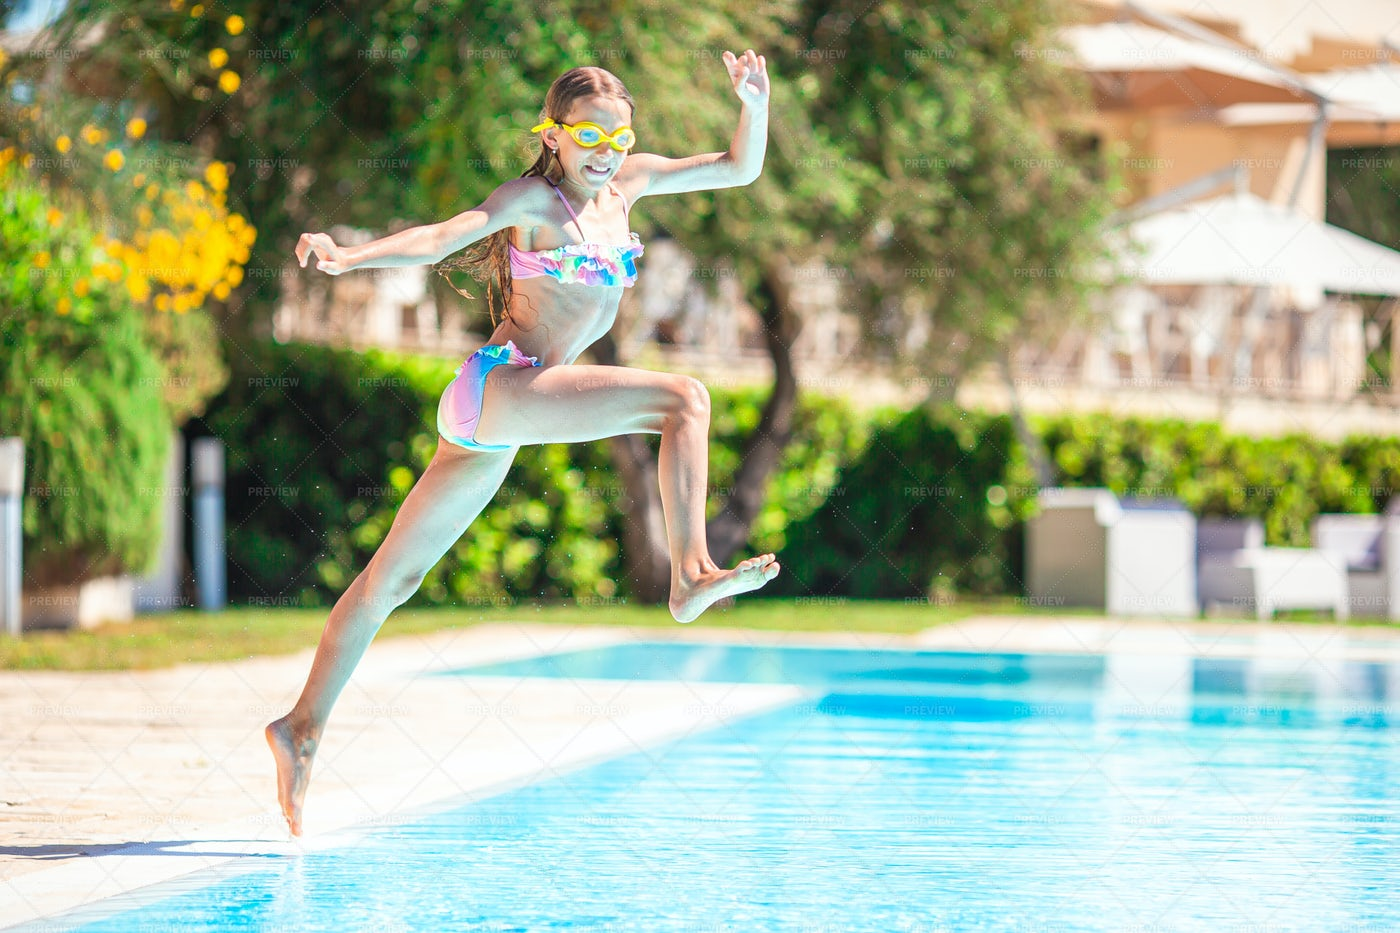 Jumping Into A Pool: Stock Photos